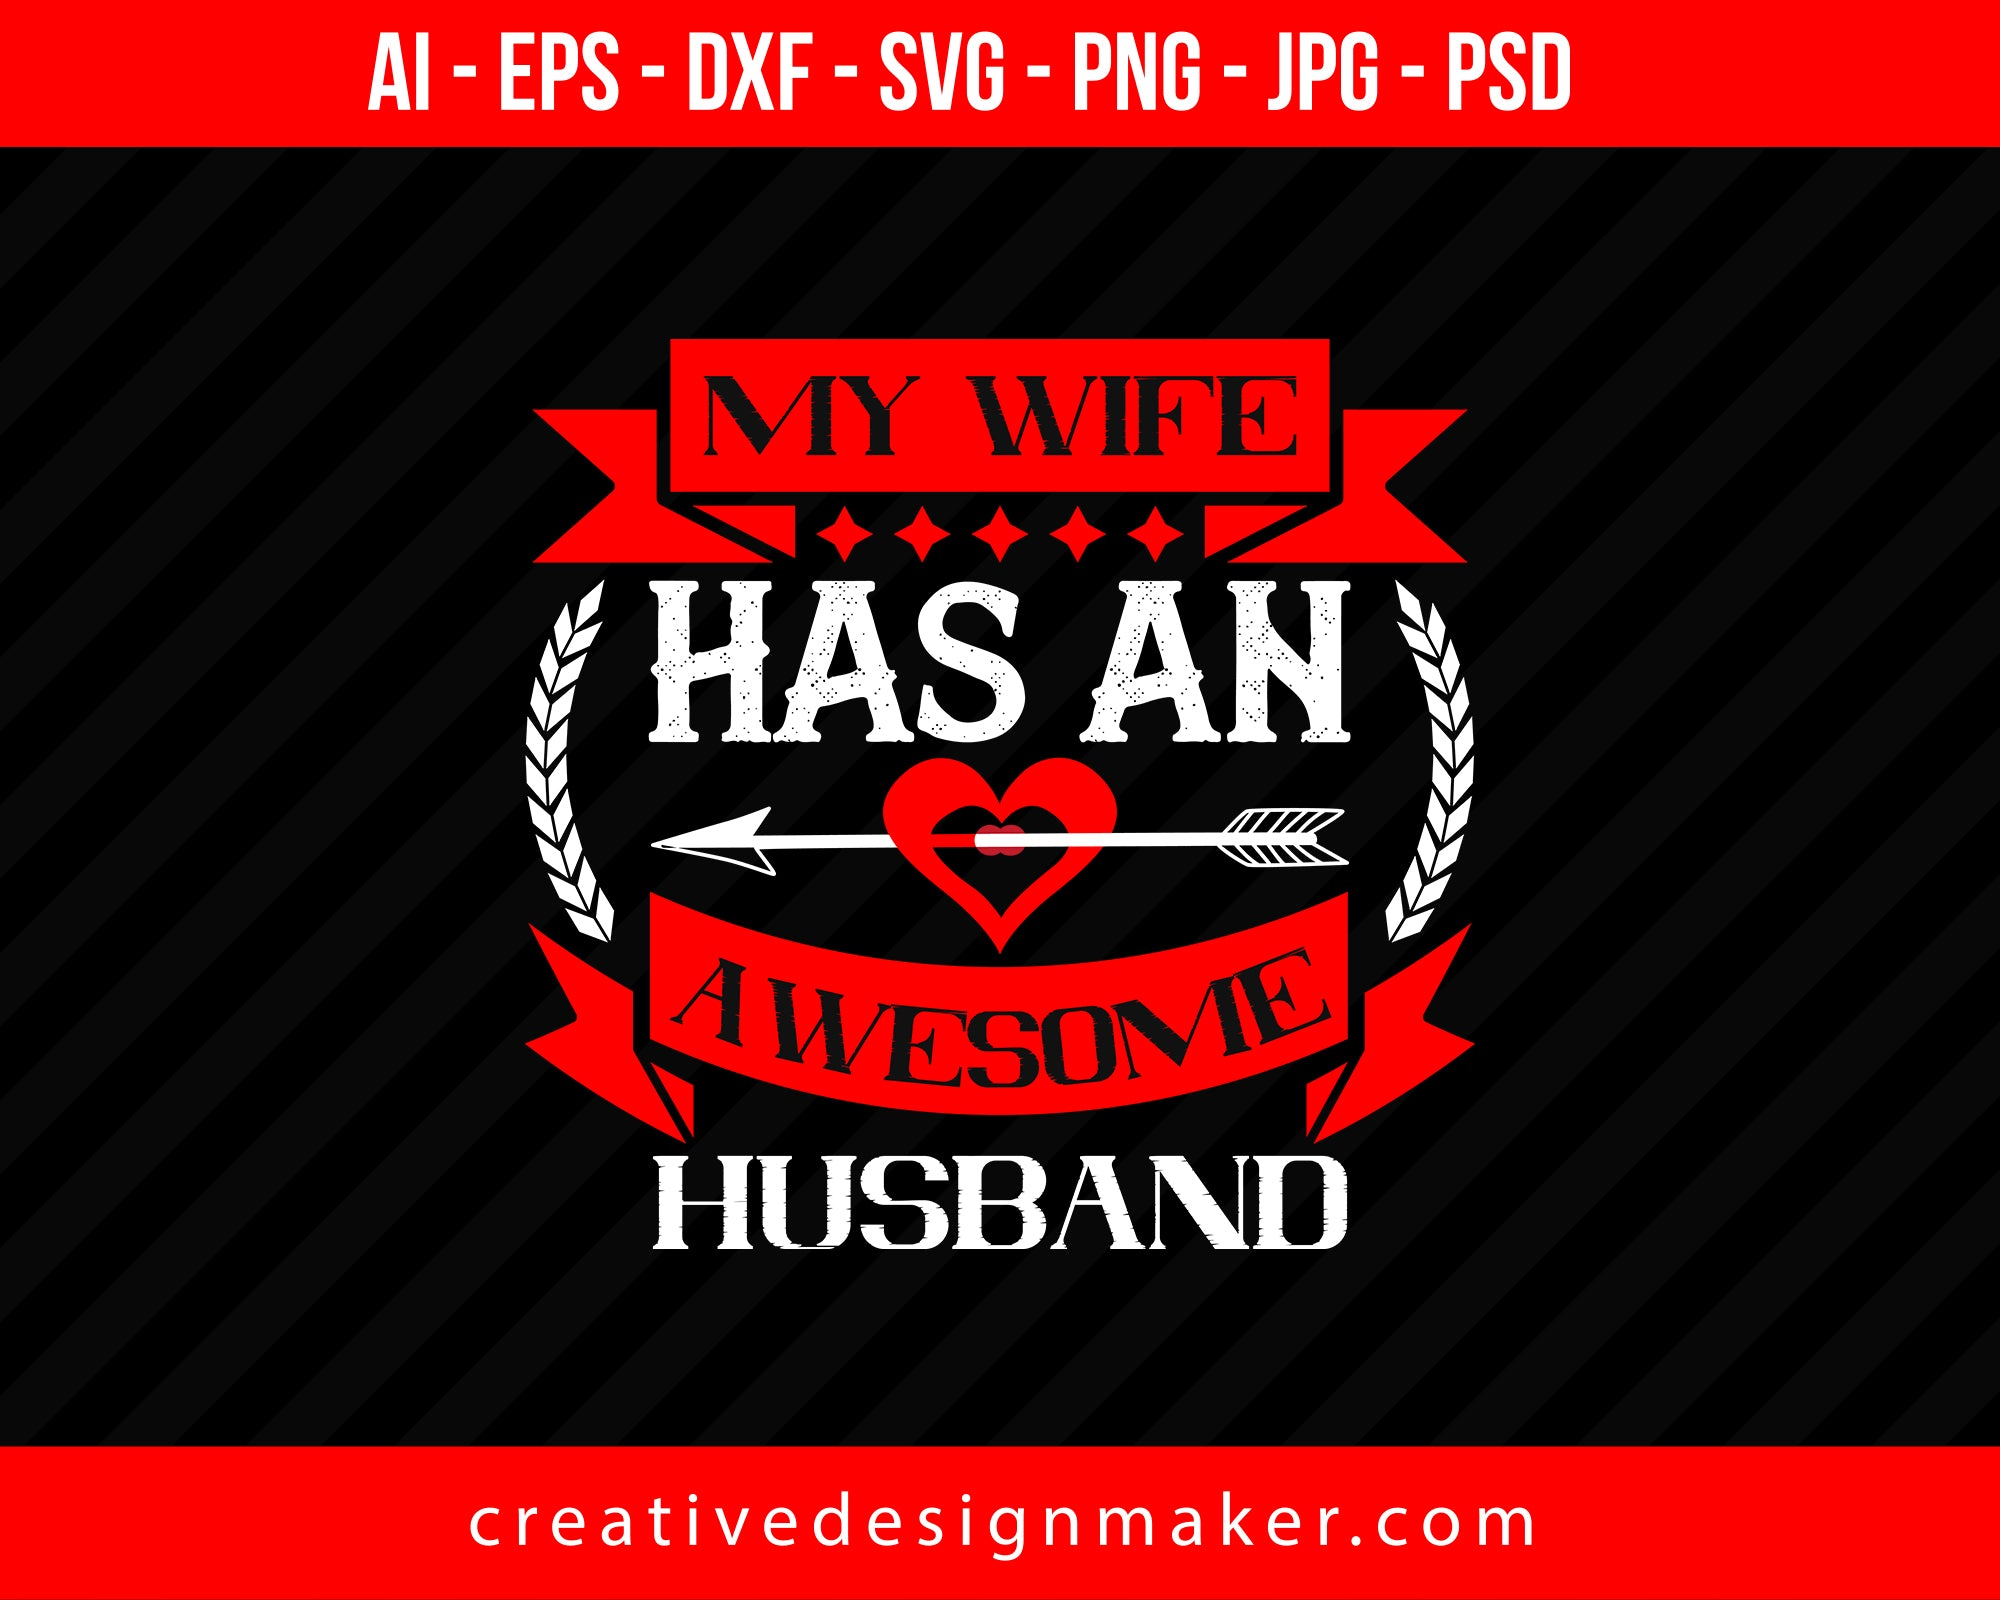 My Wife Hasan Awesome Husband Couple Print Ready Editable T-Shirt SVG Design!